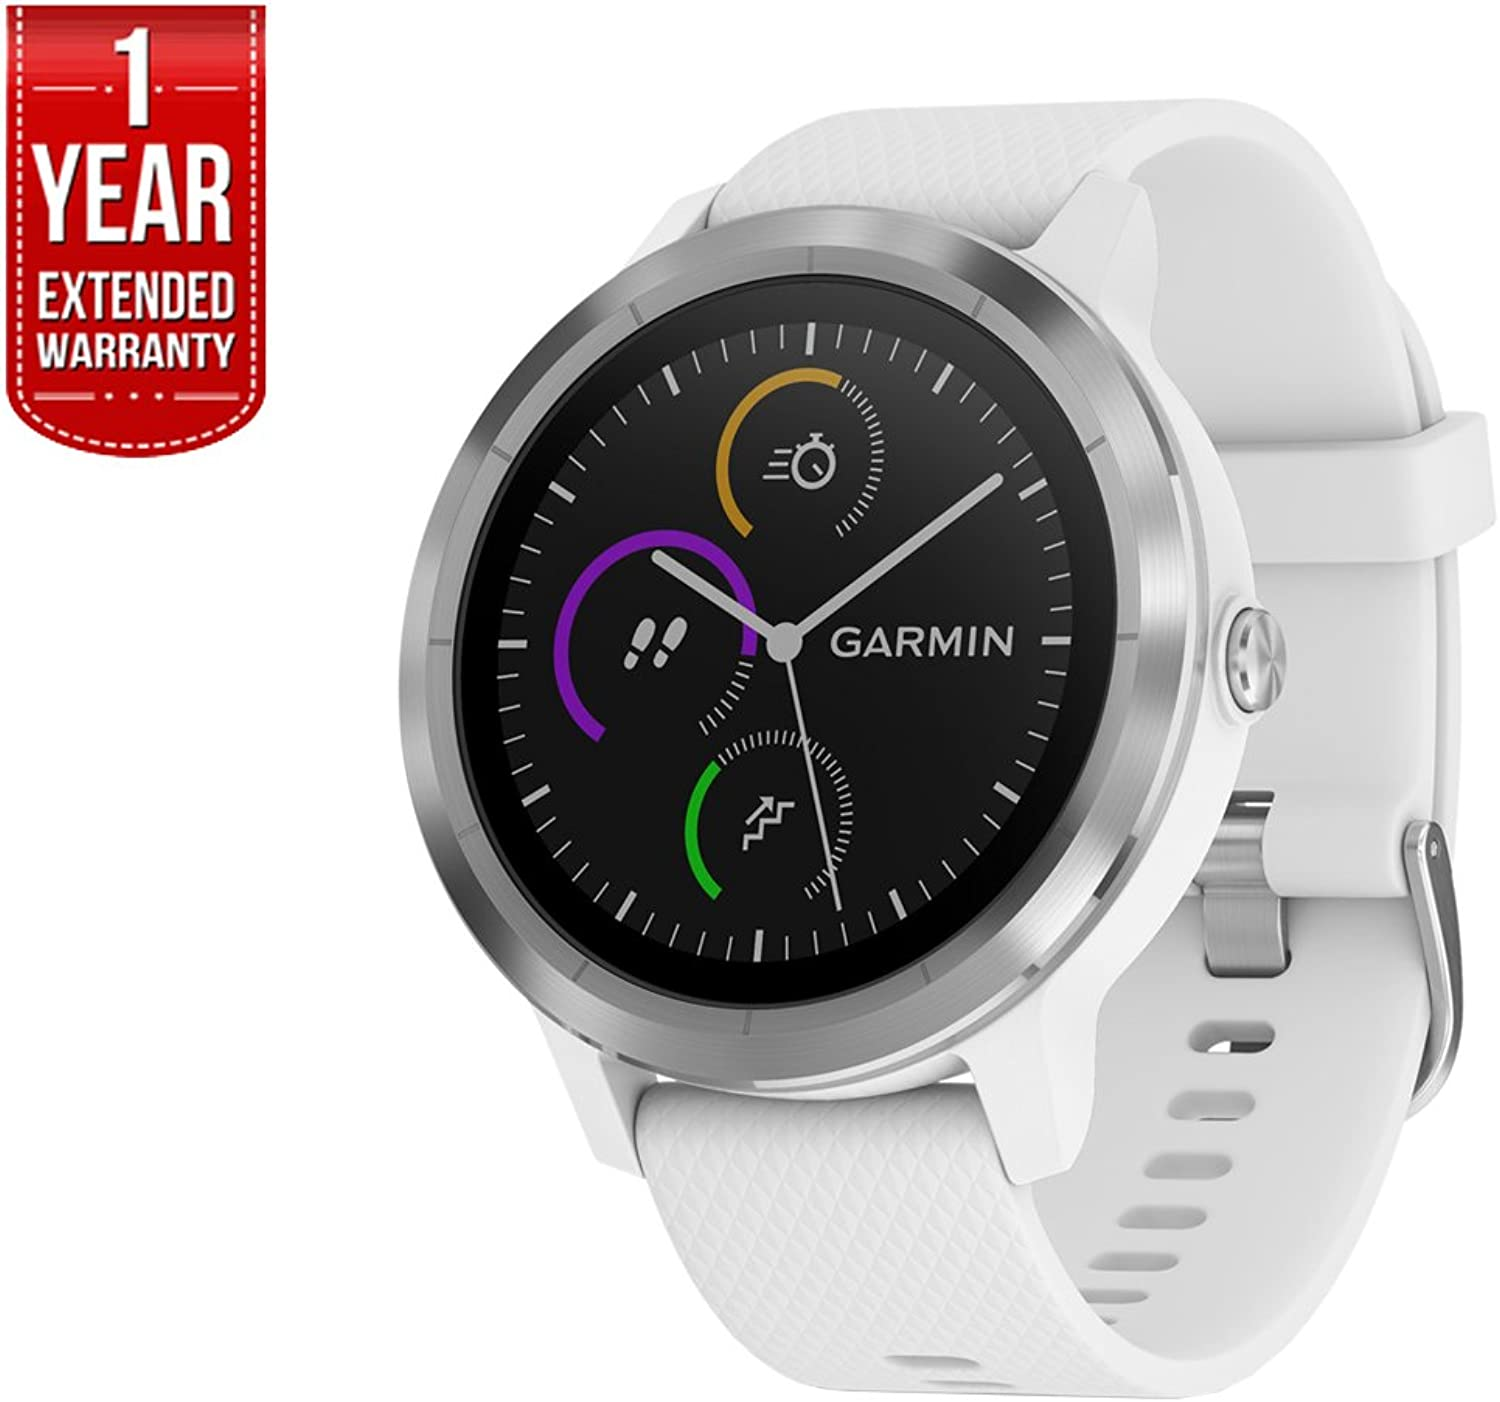 Garmin 0100176921 Vivoactive 3 GPS Fitness Smartwatch (White & Stainless) + 1 Year Extended Warranty